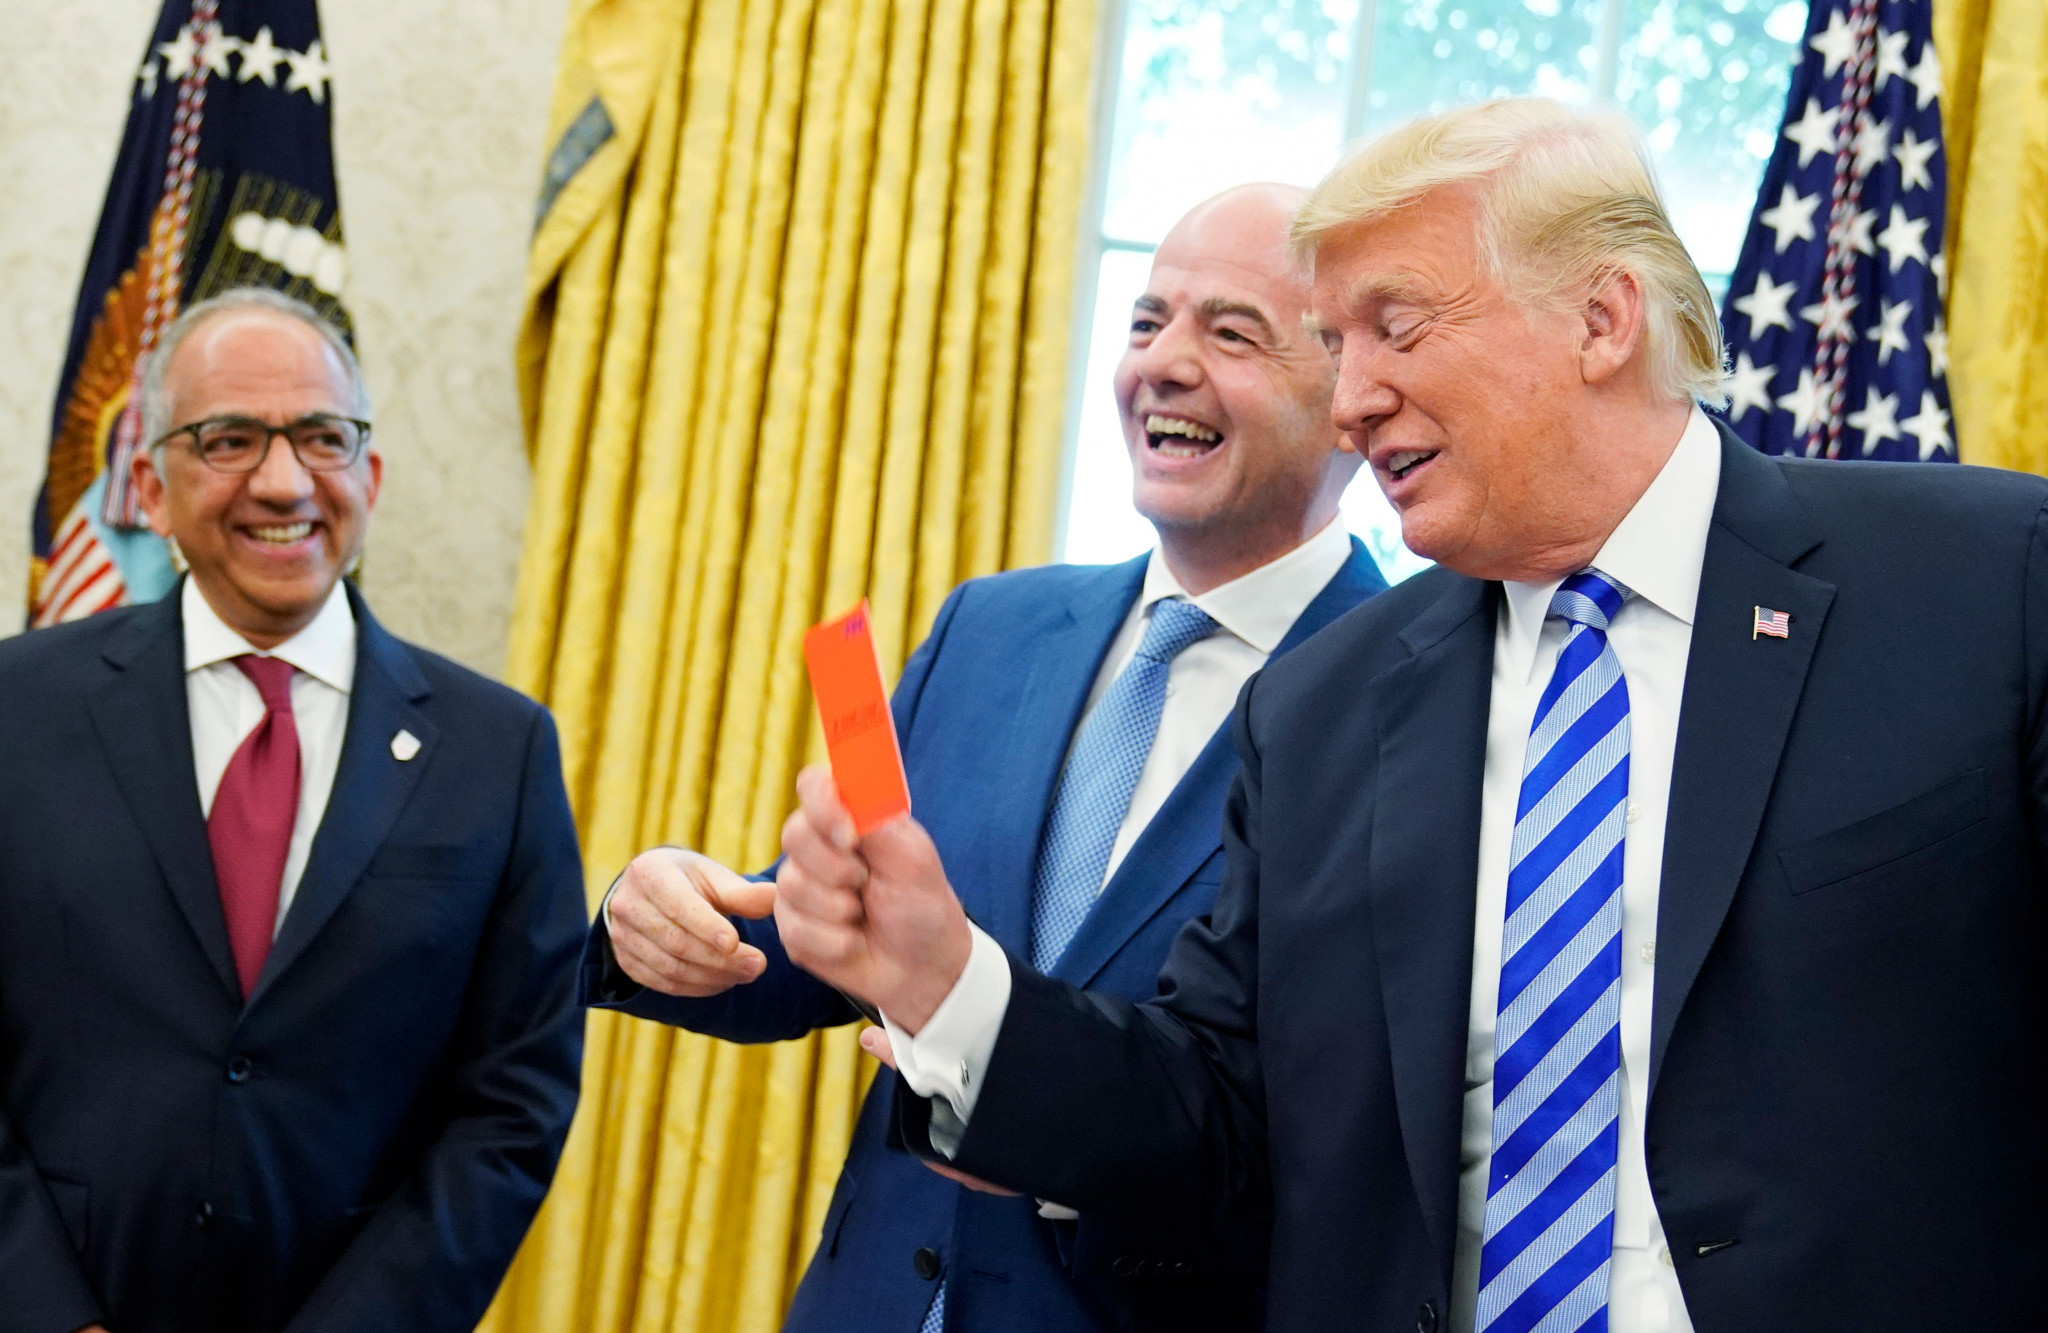 US President Donald Trump has met with FIFA President Gianni Infantino at the White House ©Getty Images